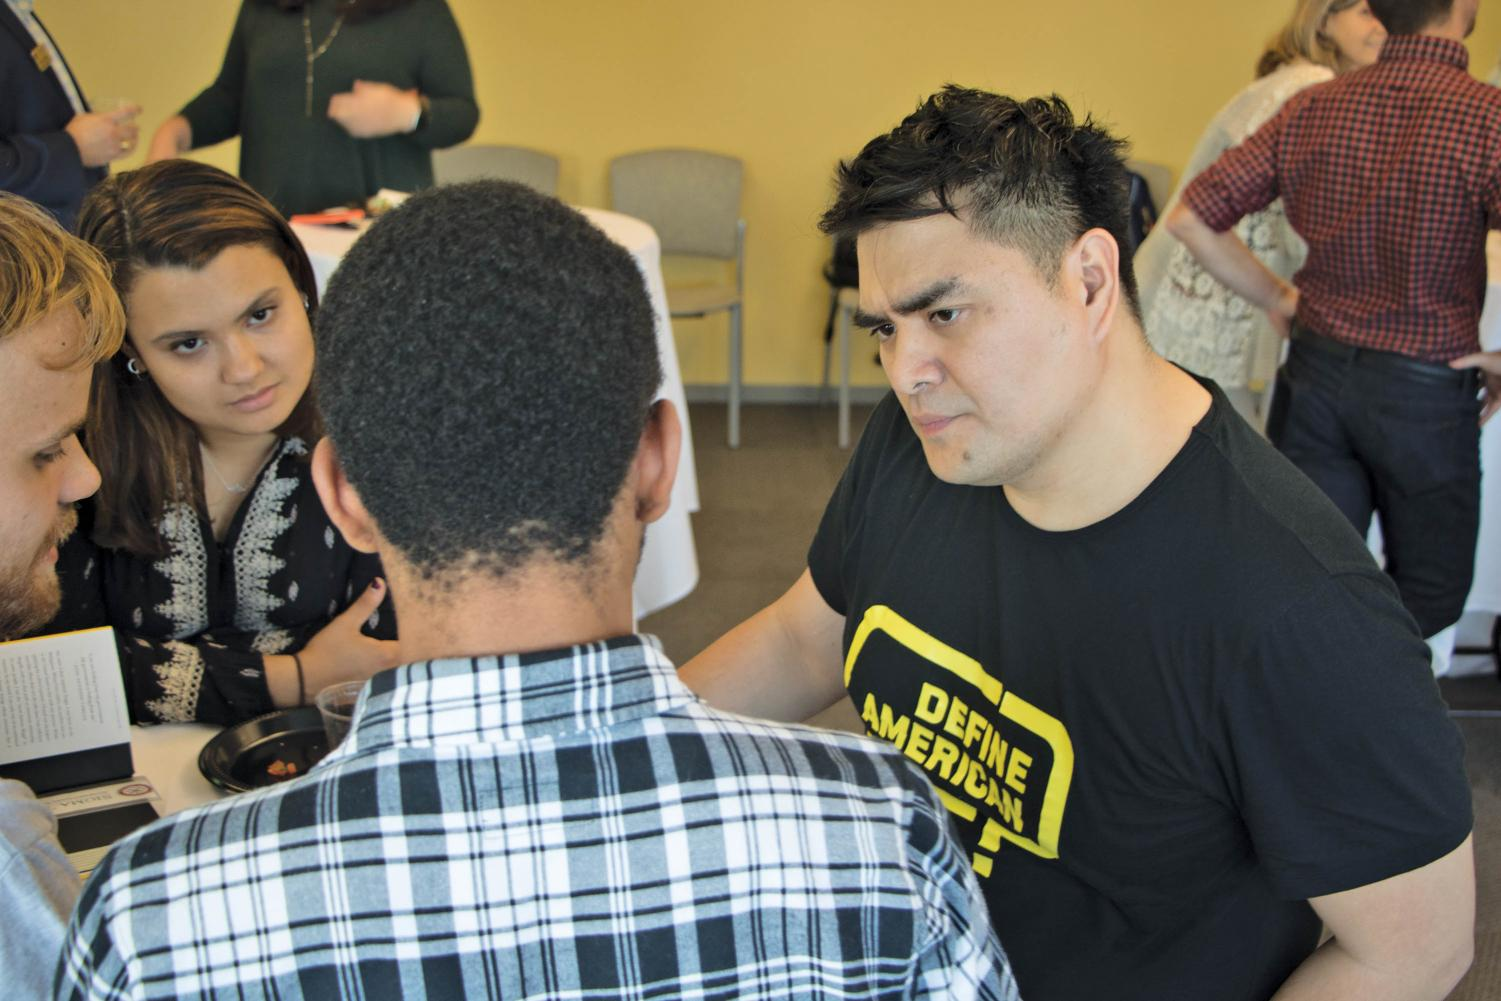 Award-winning journalist Jose Antonio Vargas speaks to students at the event. Vargas is the author of